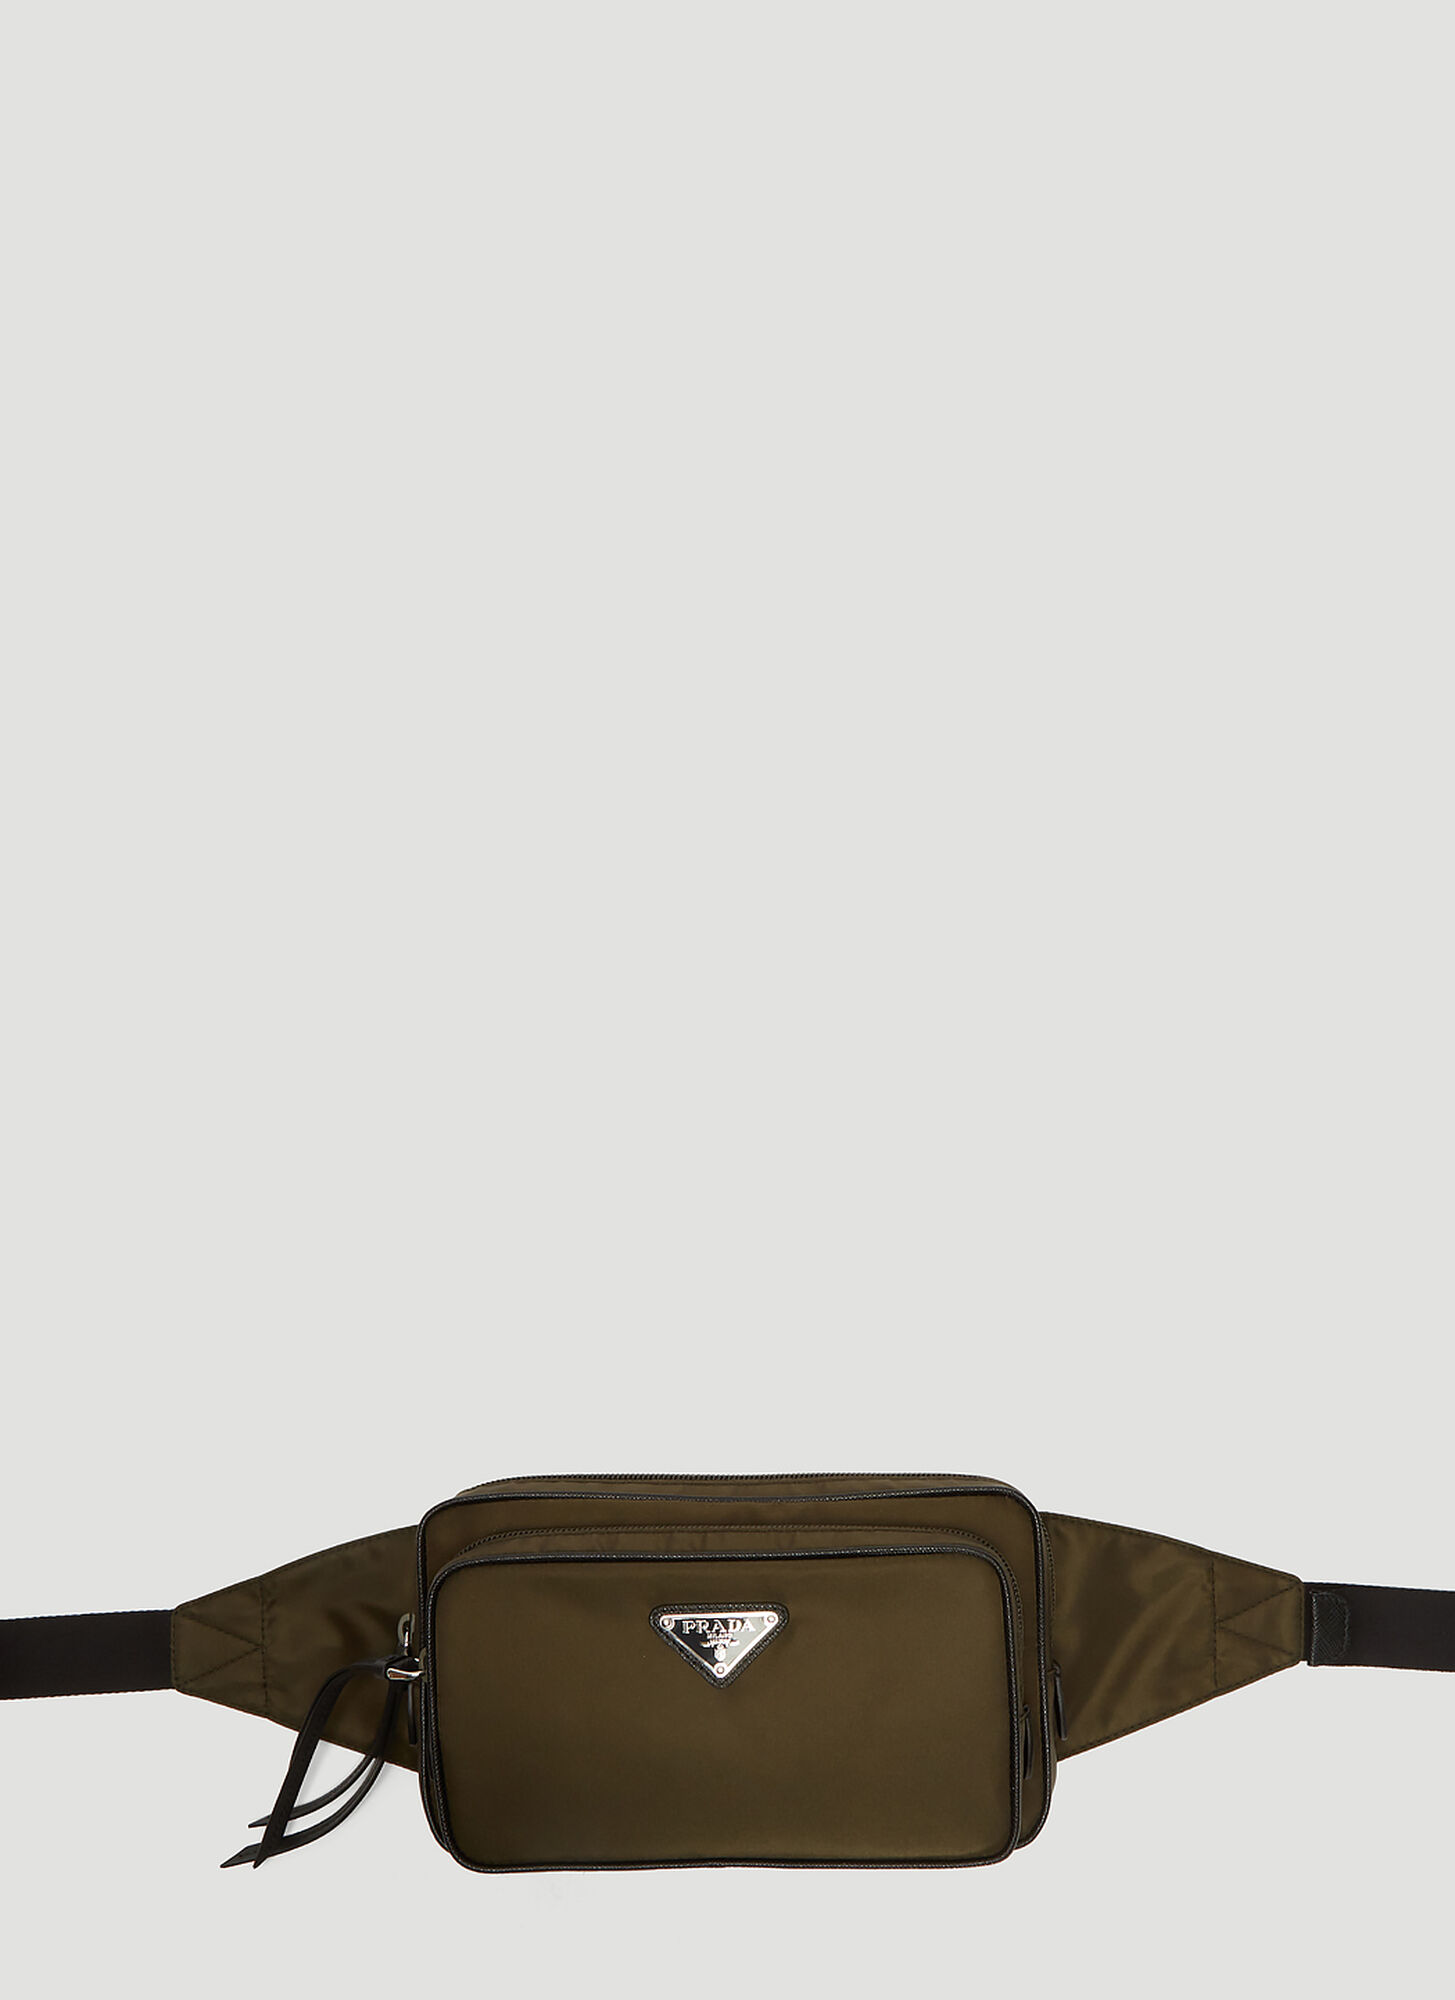 Prada Nylon Belt Bag in Green